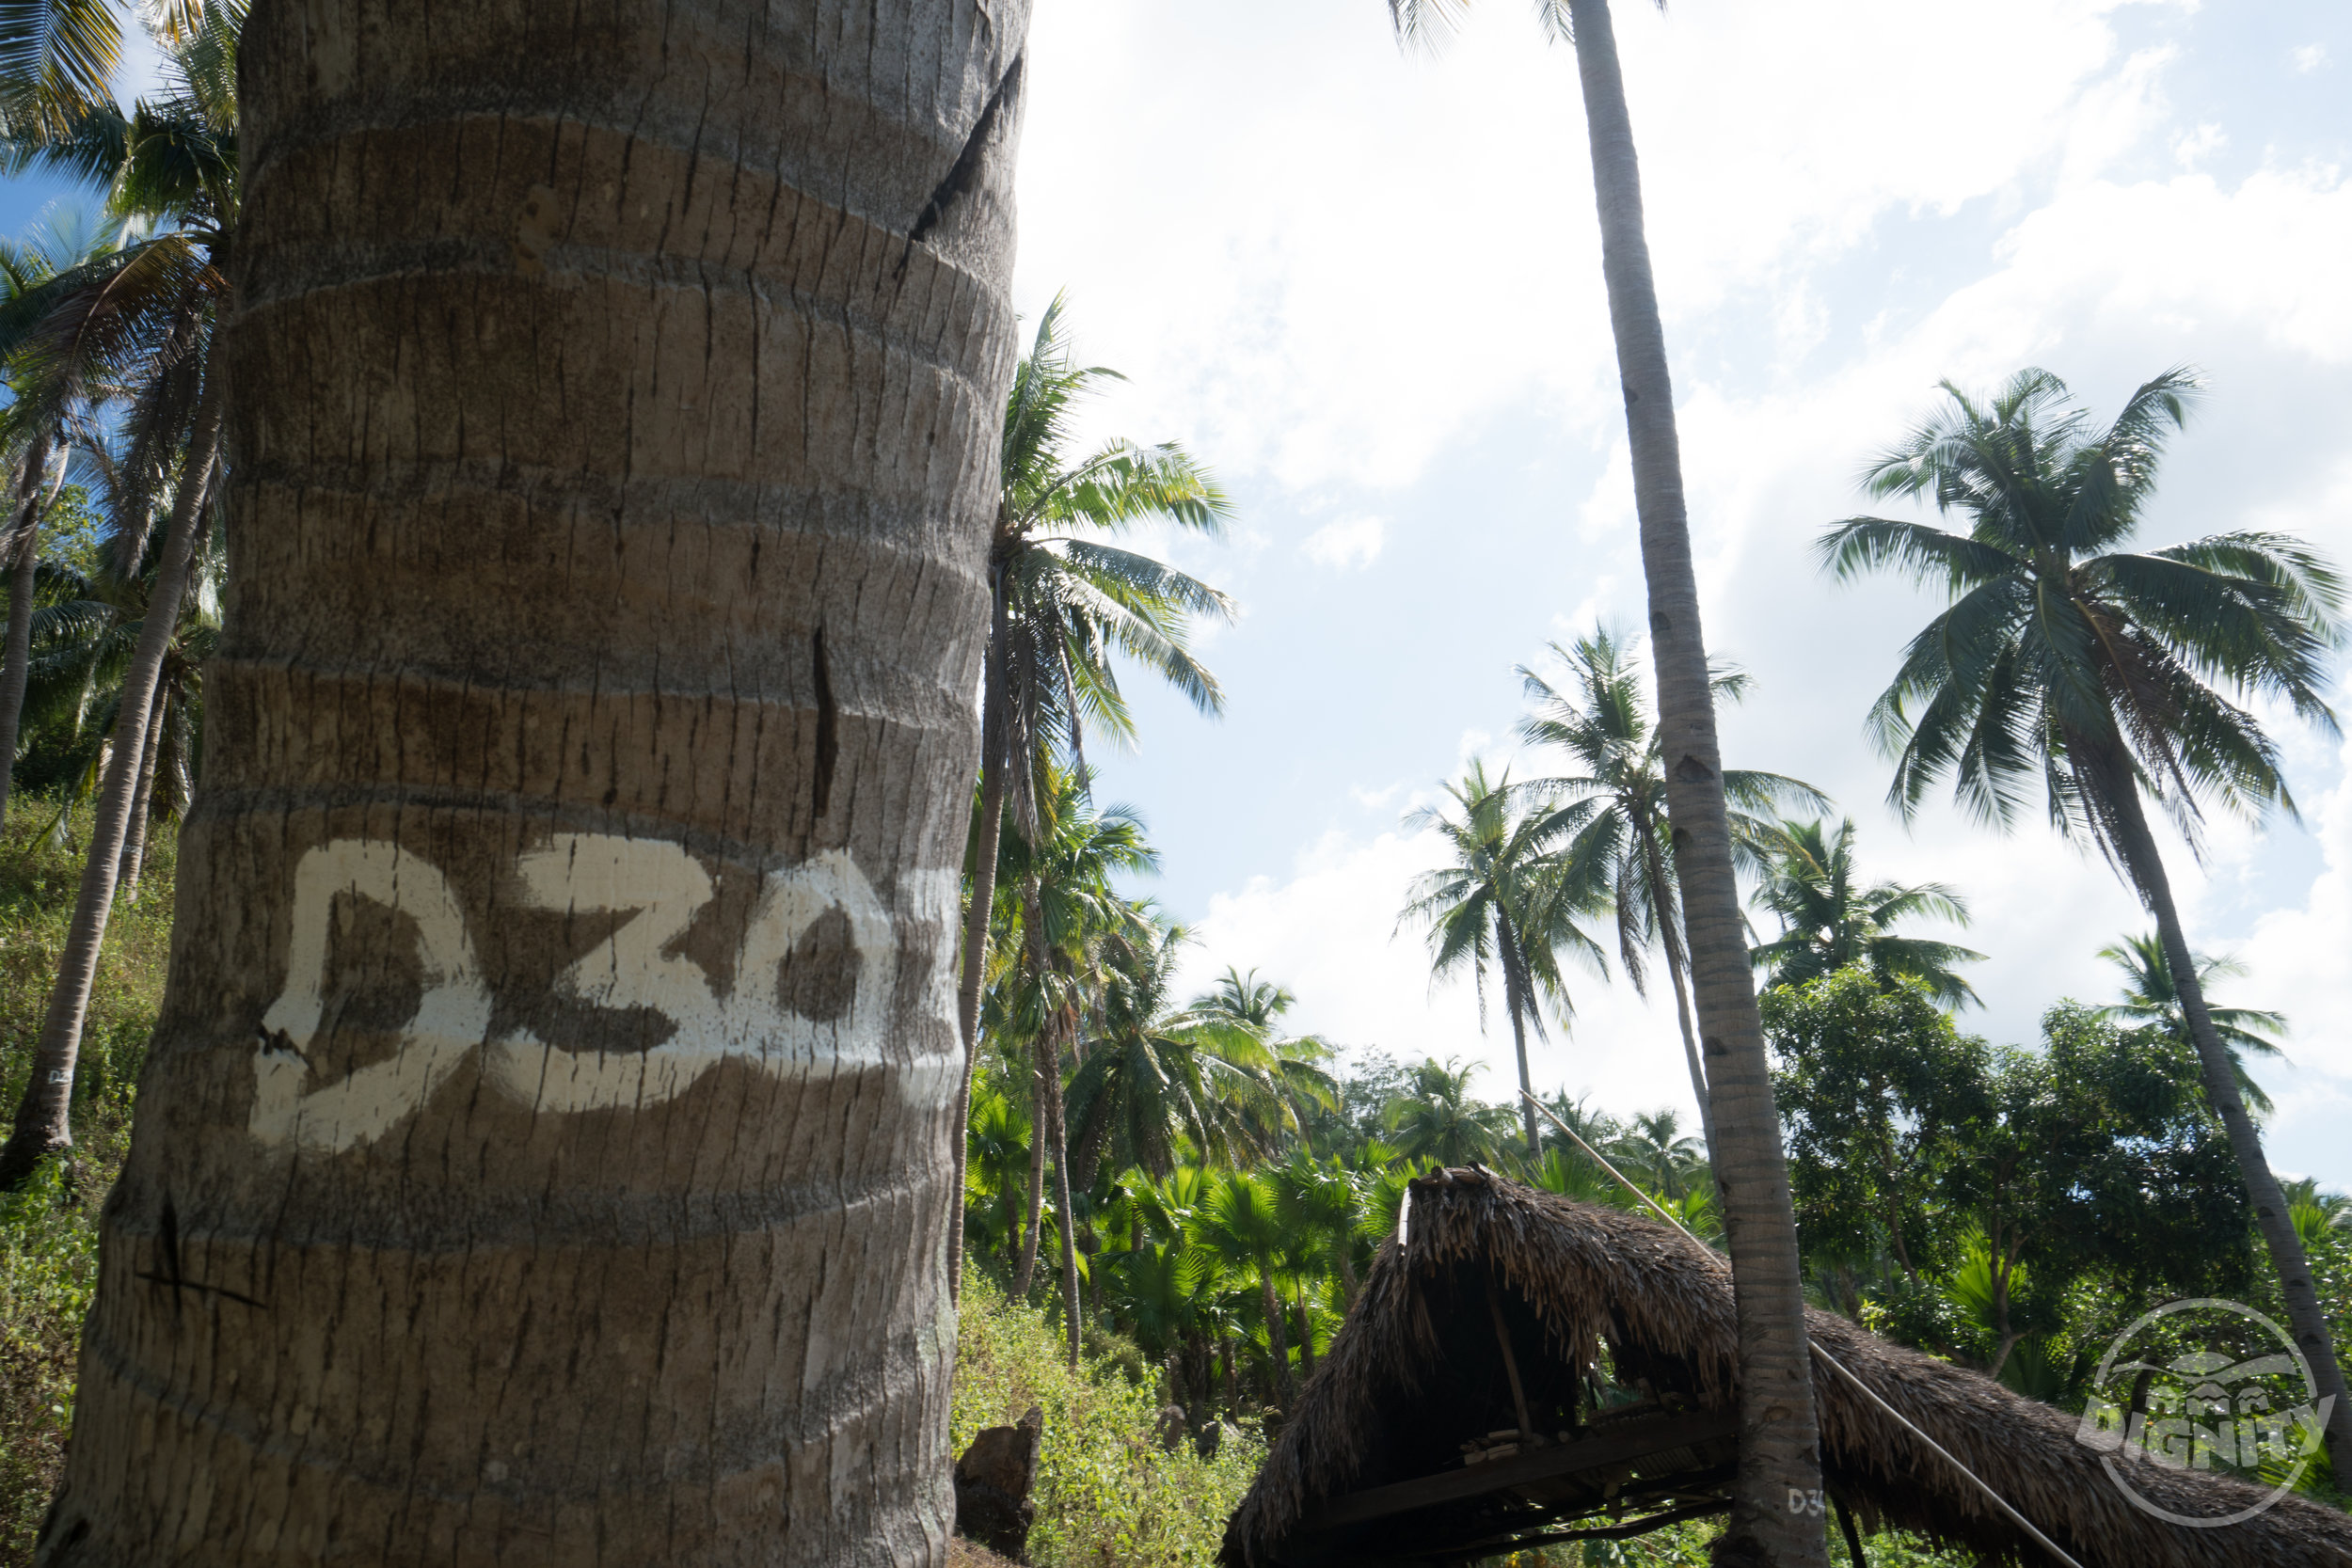 Certify every tree - Third, we number EACH tree. That's right. We have individually numbered 54,514 coconut trees. They are all approved as Organic. We can even trace your jar of coconut oil back to one of the exact trees it came from.